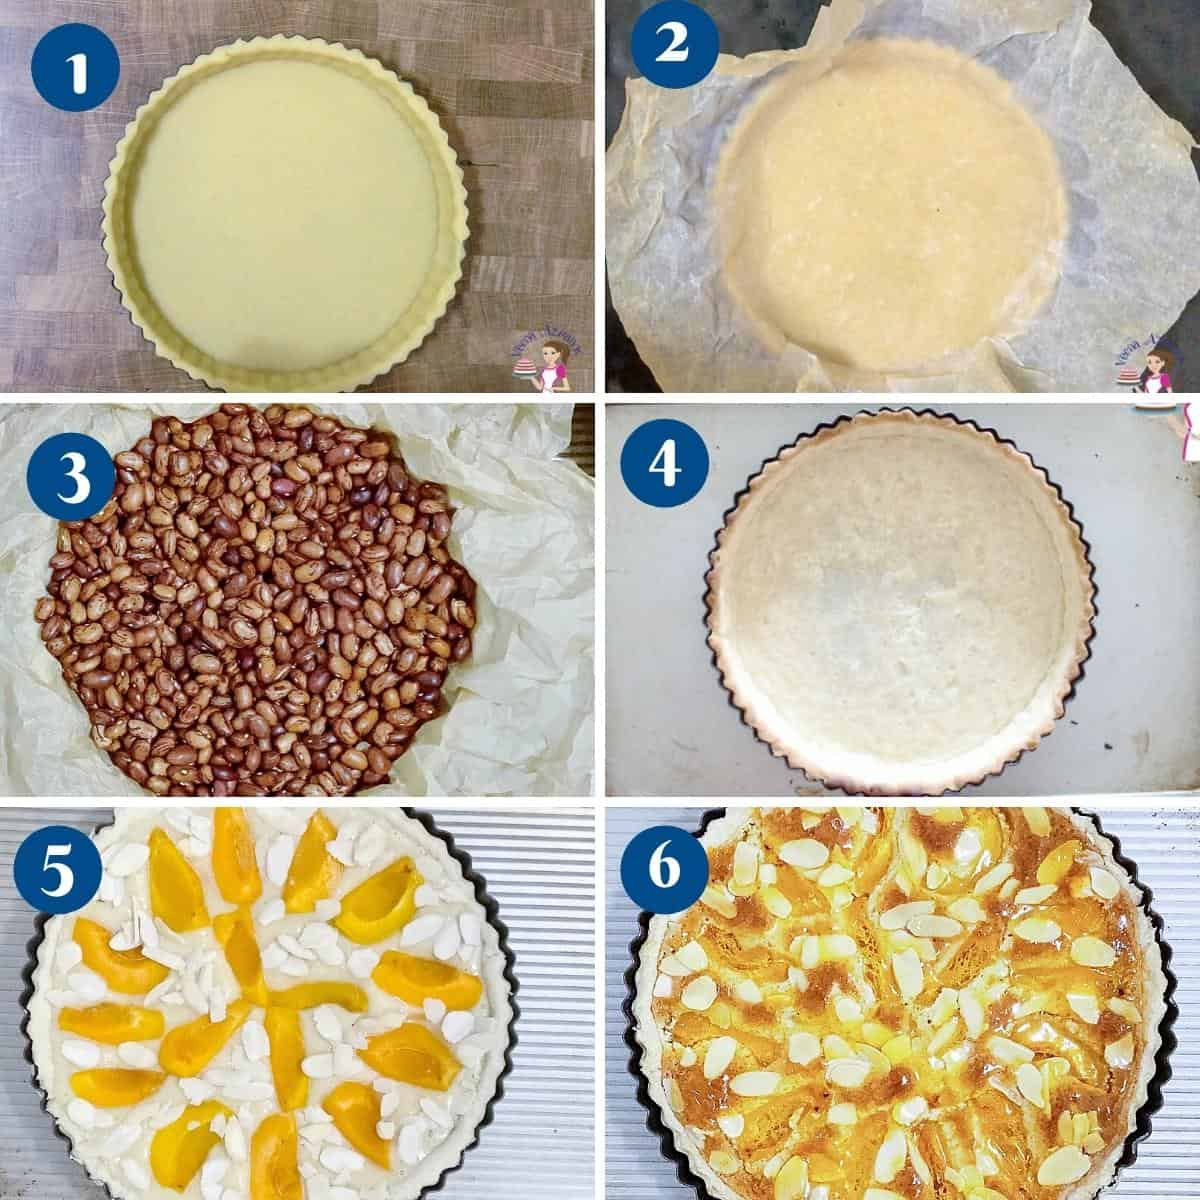 Progress pictures collage how to partially bake a tart shortcrust pastry.